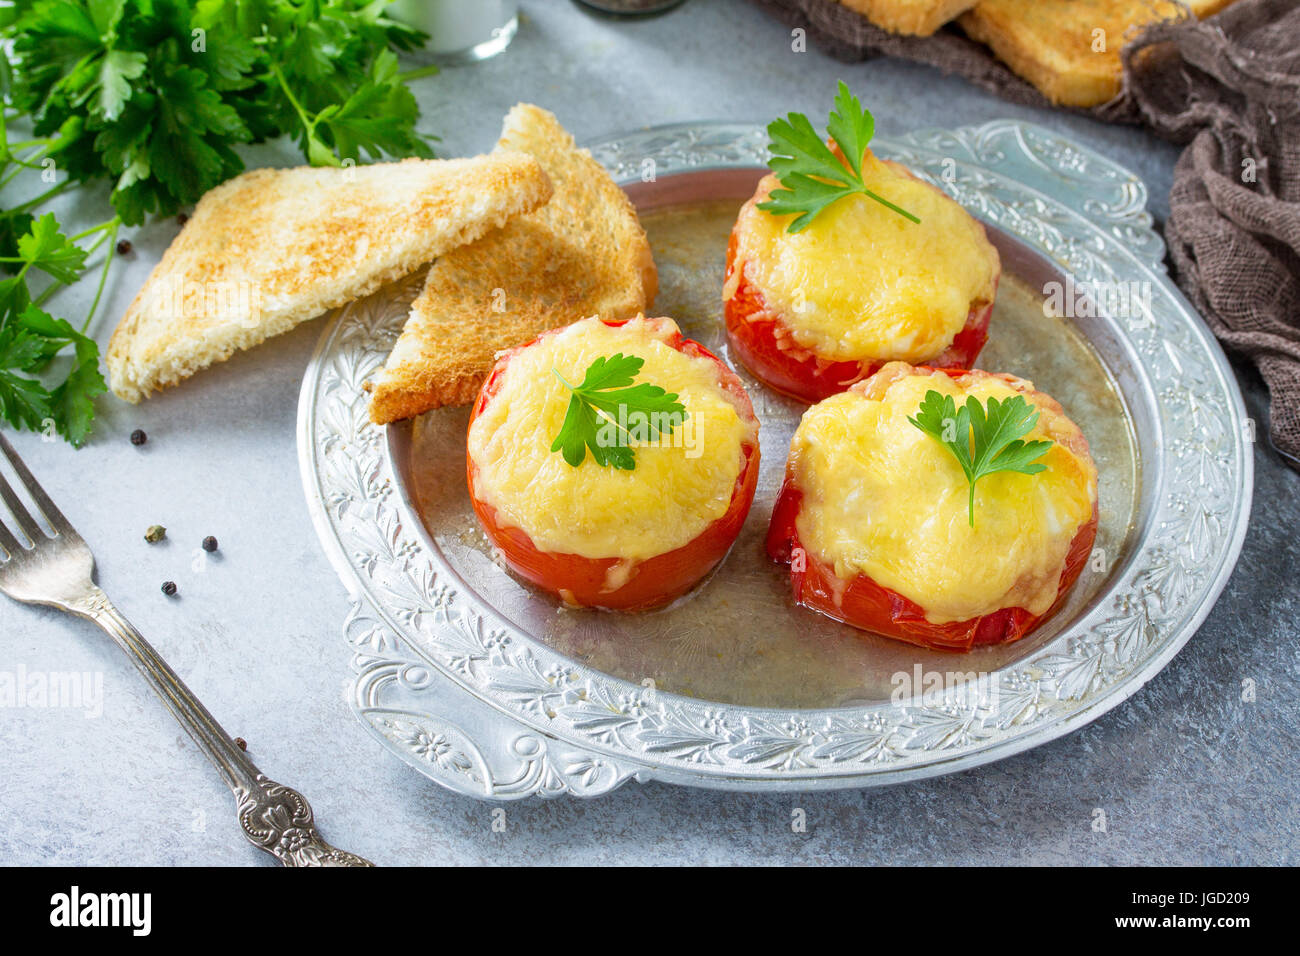 Stuffed tomatoes. Tomatoes baked with cheese and chicken, served with croutons of white bread. - Stock Image